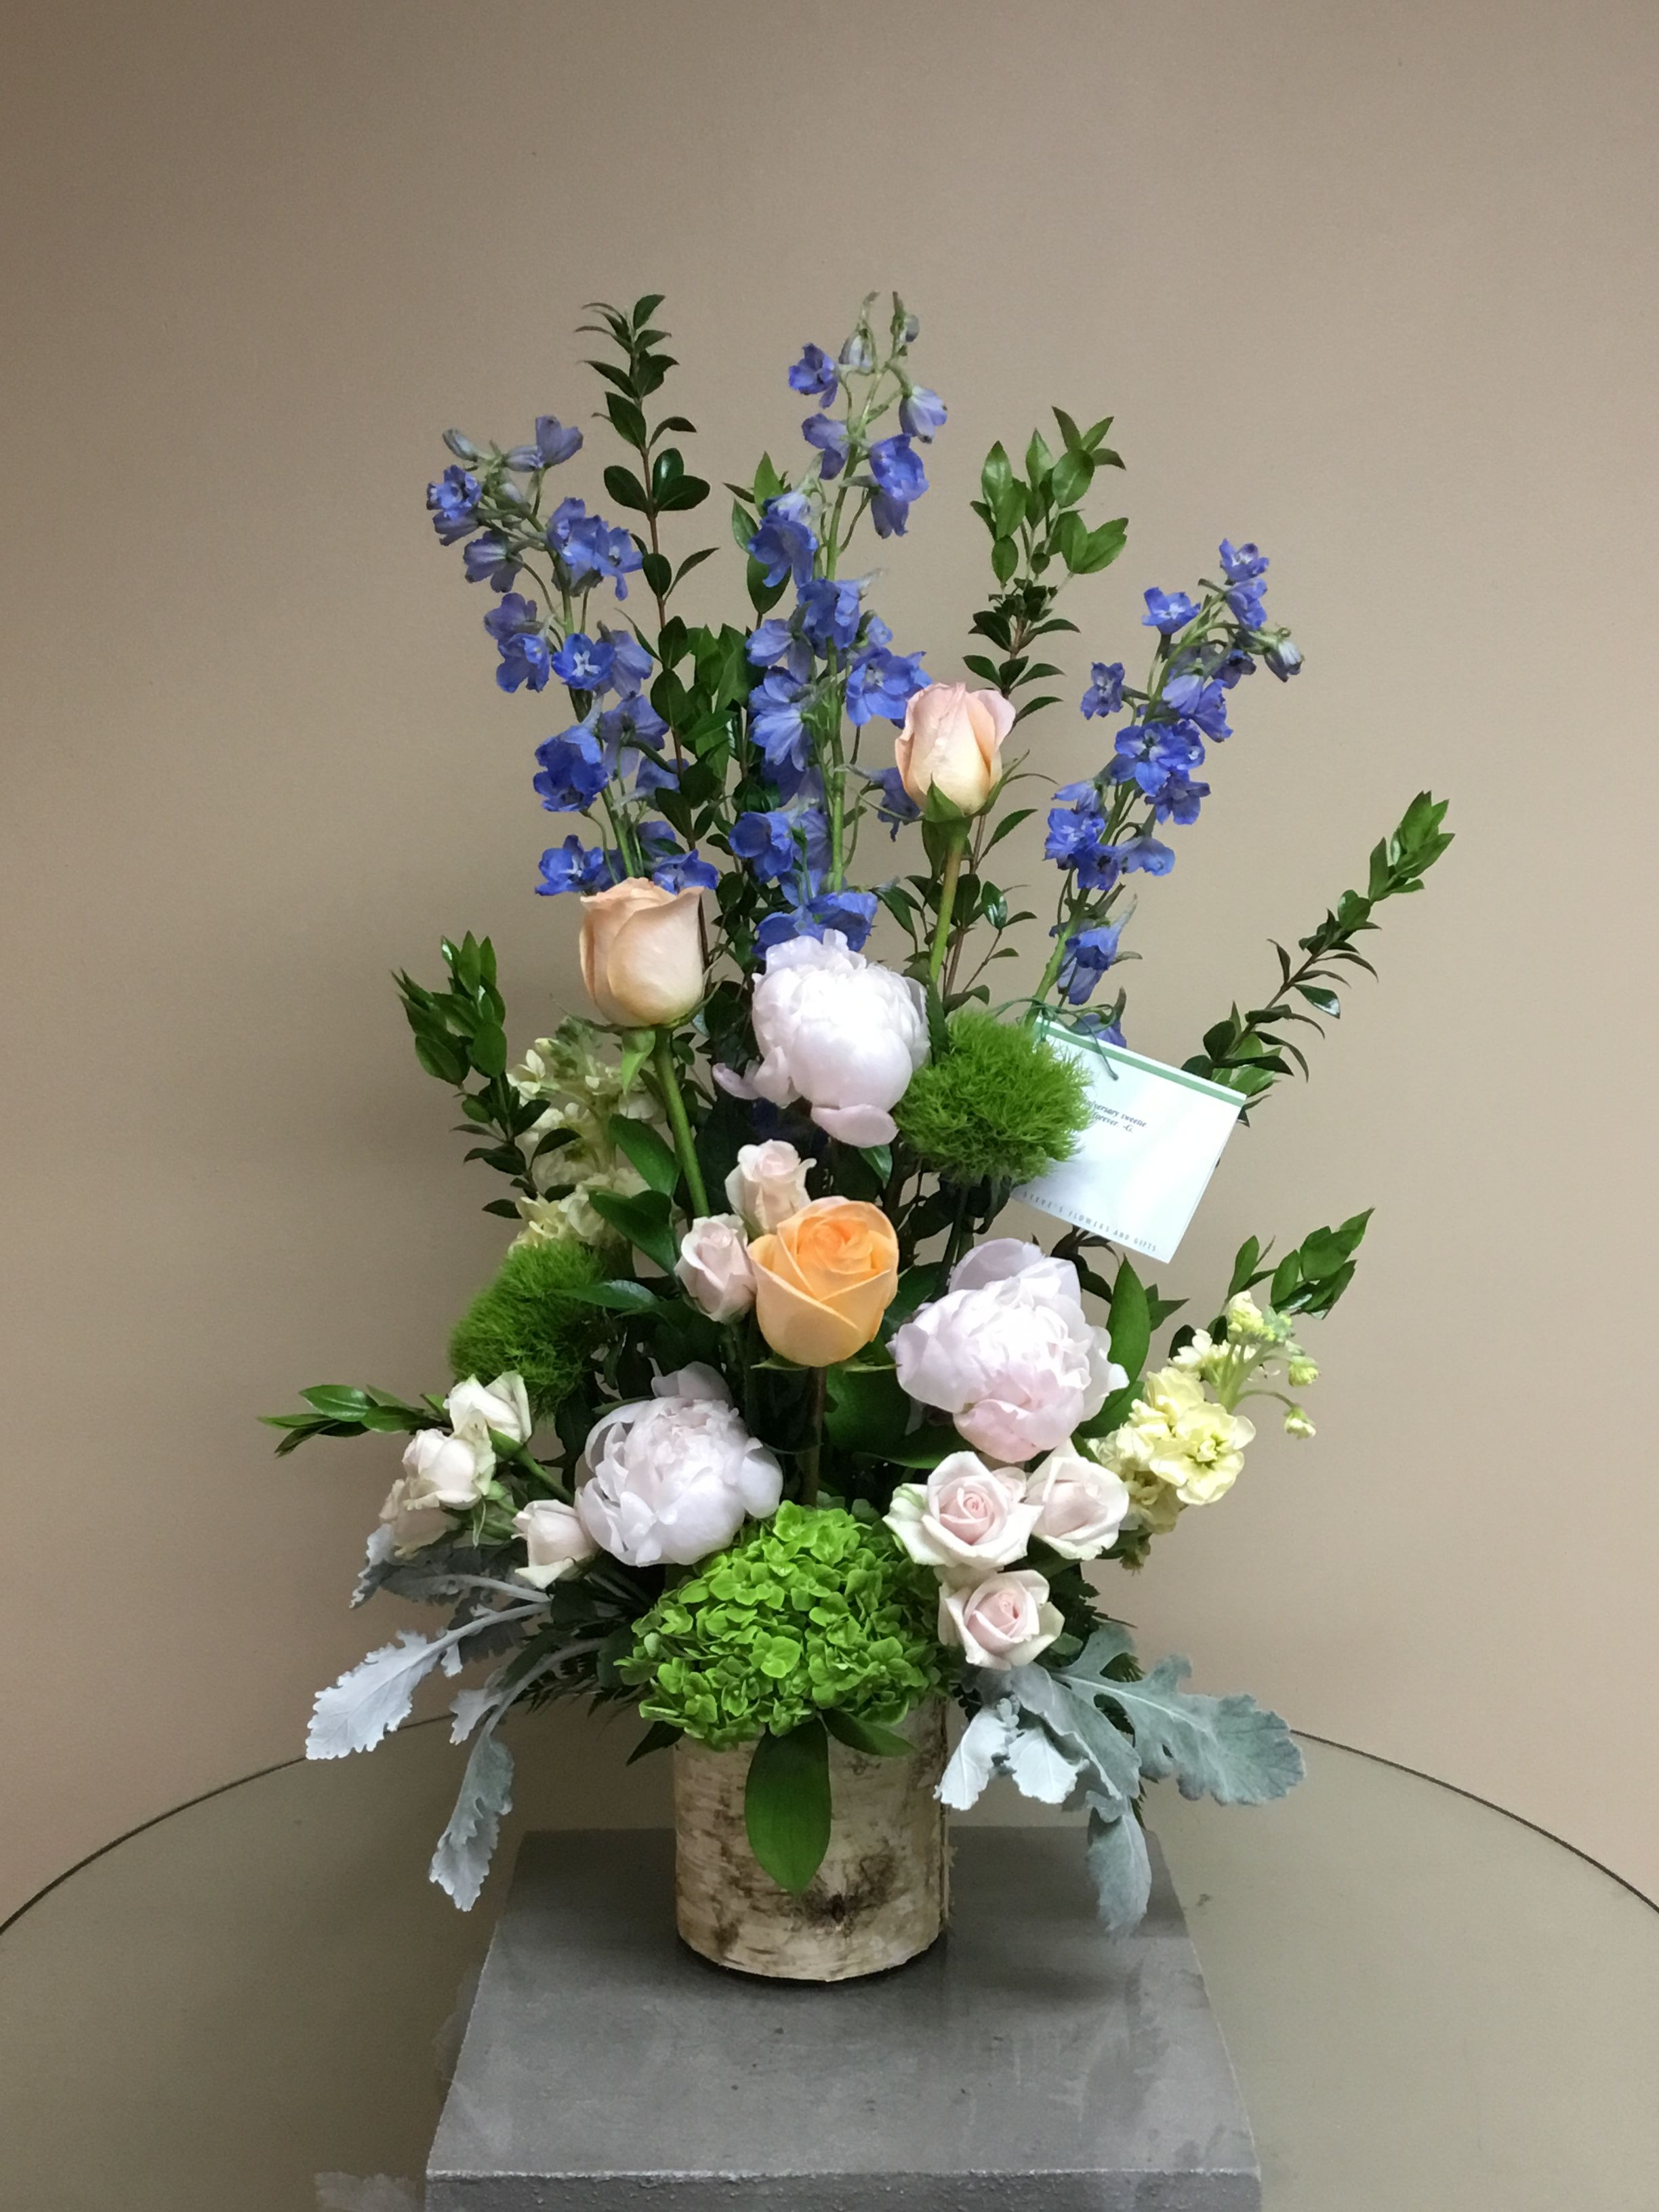 Beautiful Arrangement Using Our Locally Grown Peonies #Localflorist #Indy